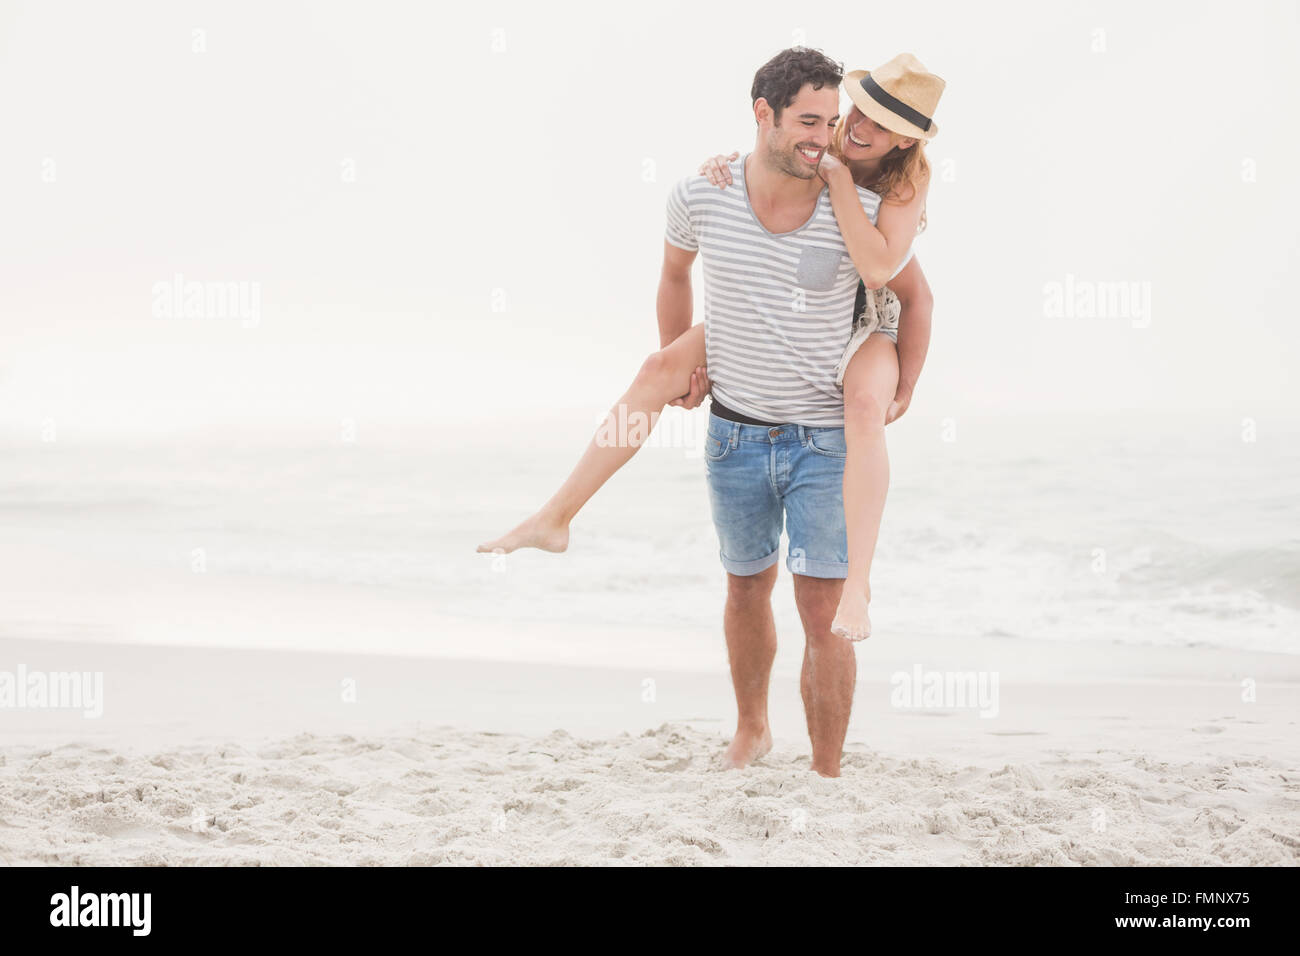 Man giving a piggy back to woman on the beach Stock Photo